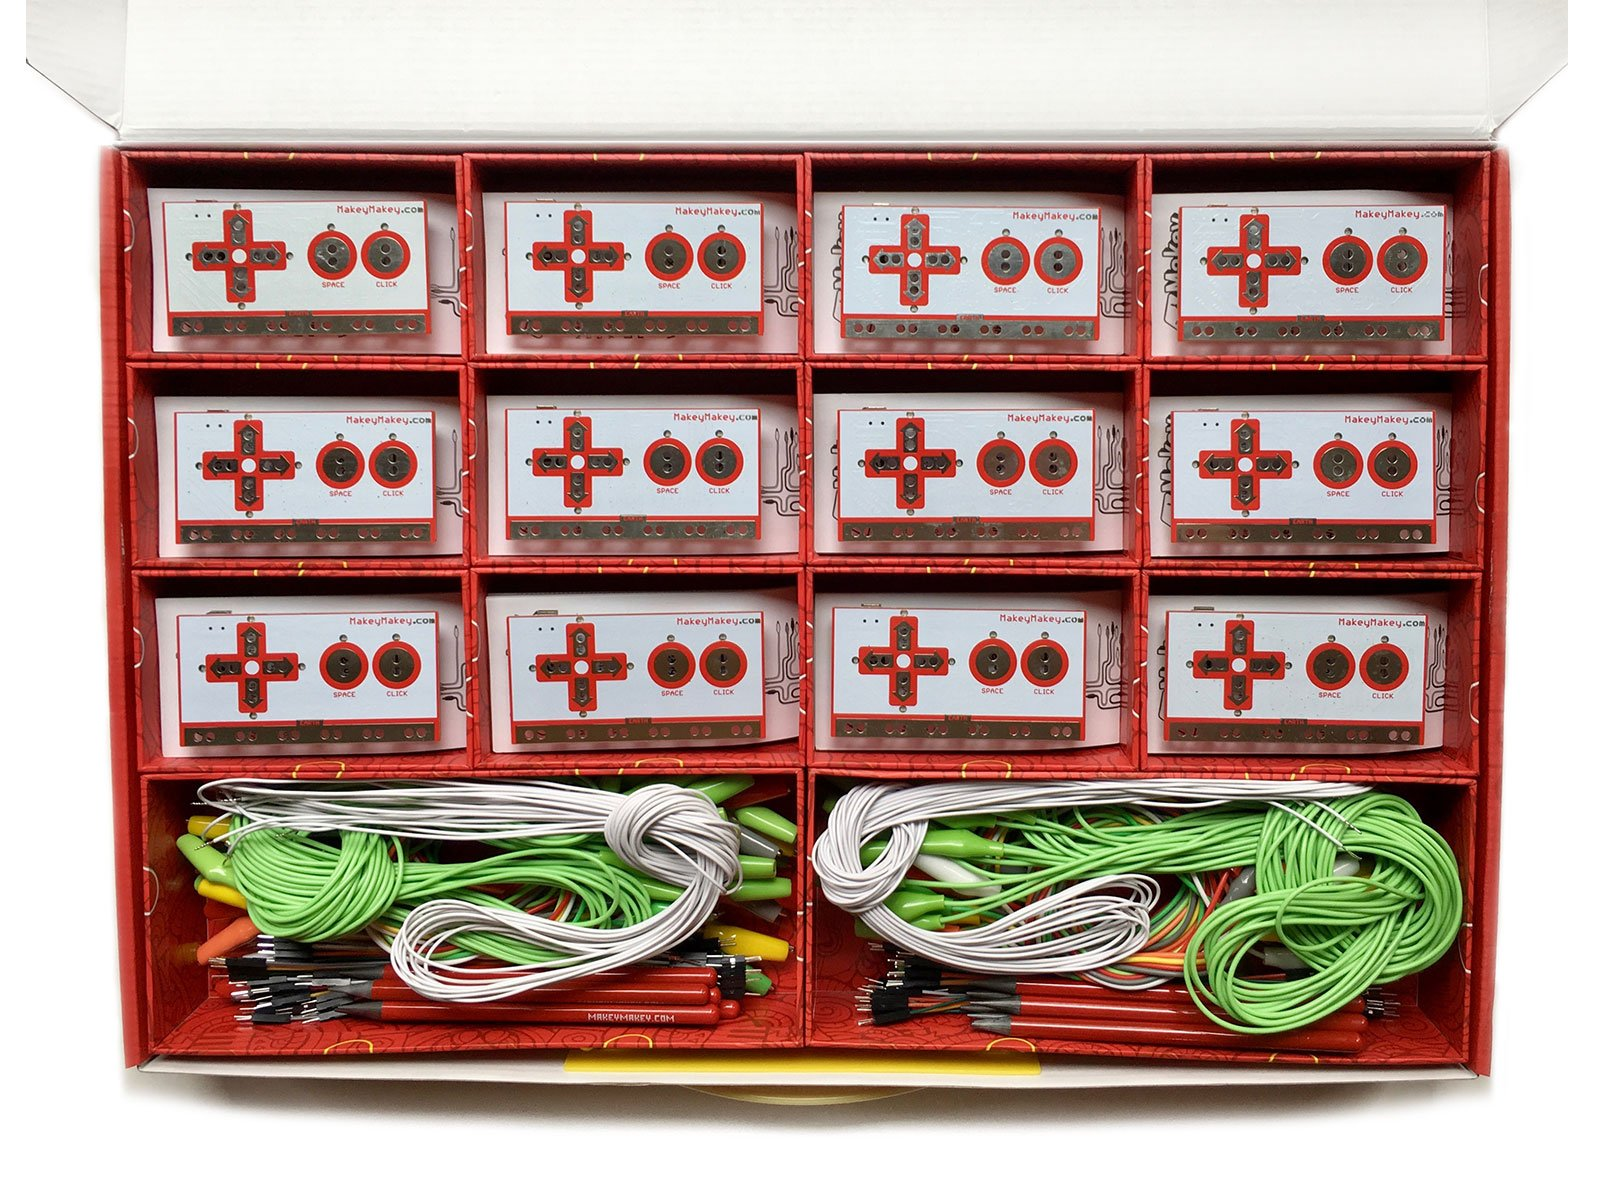 Makey Makey Stem Pack - Classroom Invention Literacy Kit, Red by Makey Makey (Image #3)